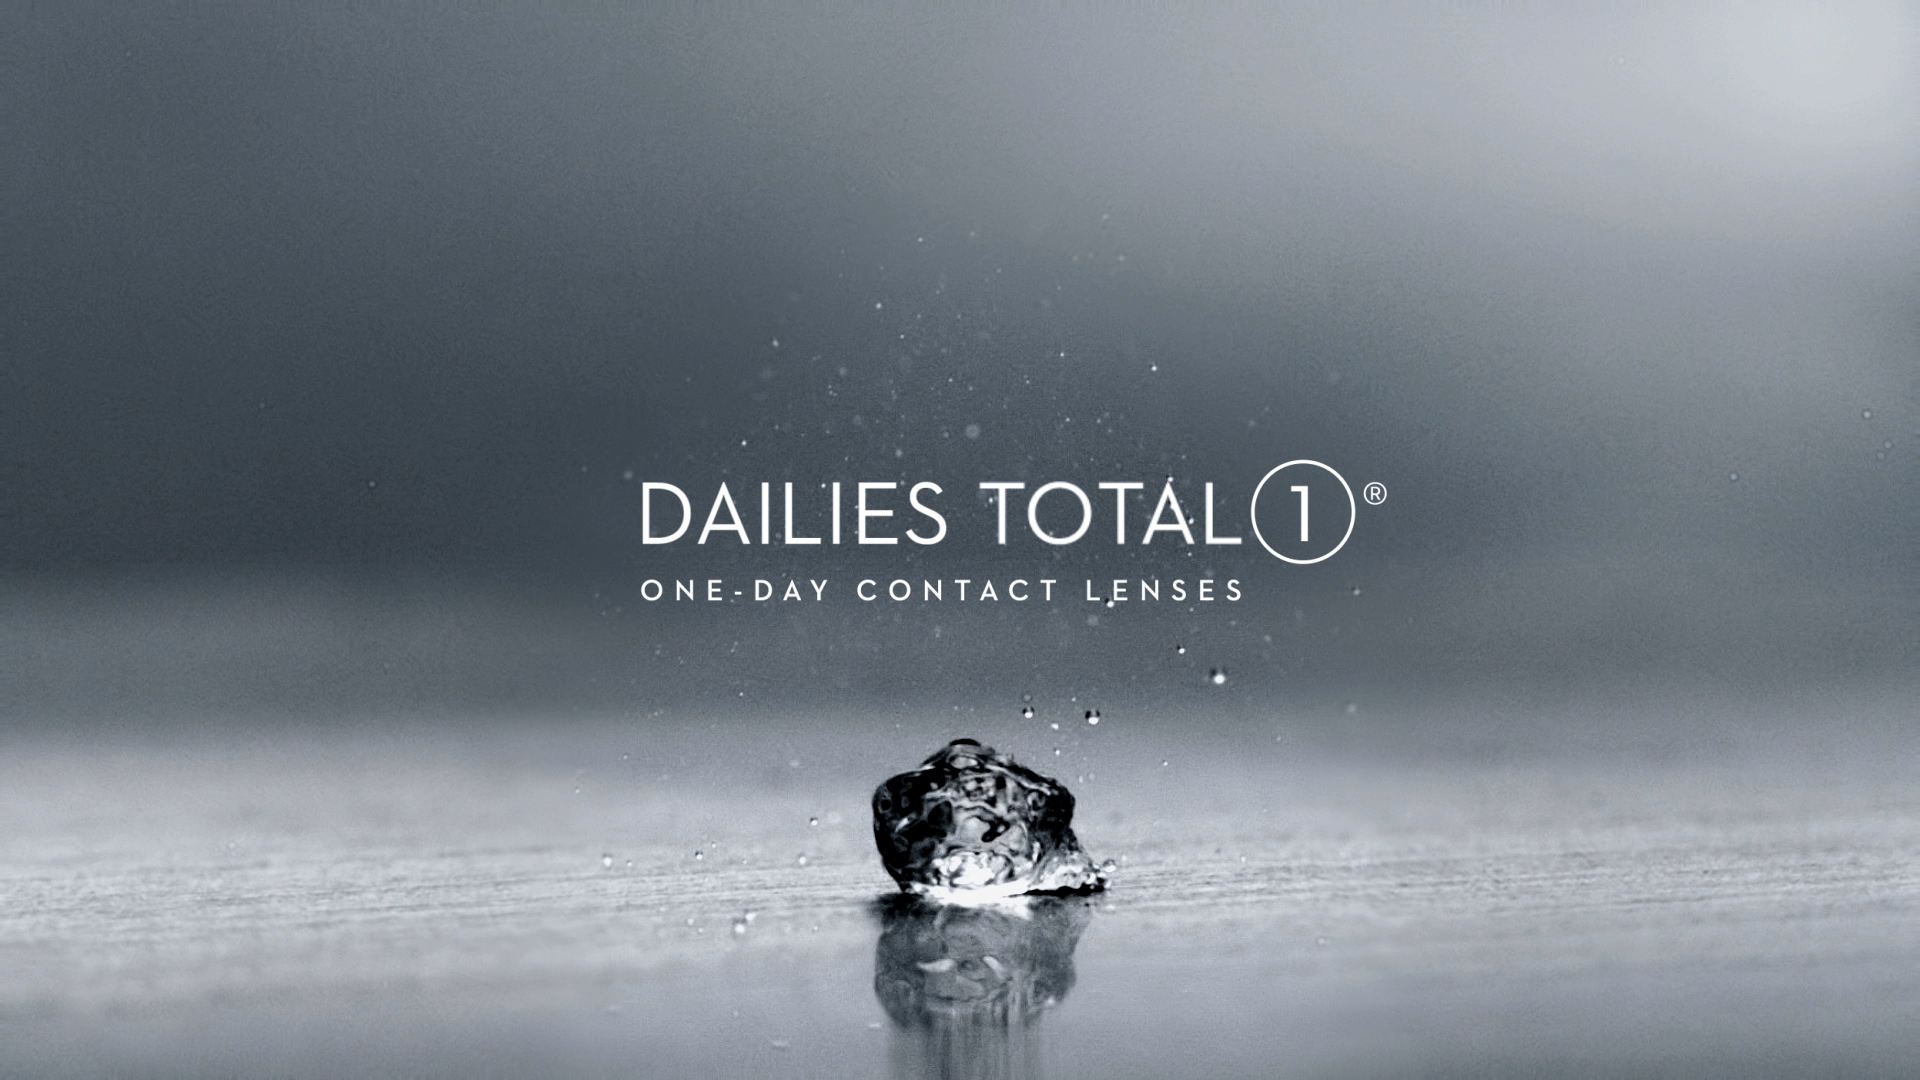 DAILIES TOTAL 1  commerical and documentary film